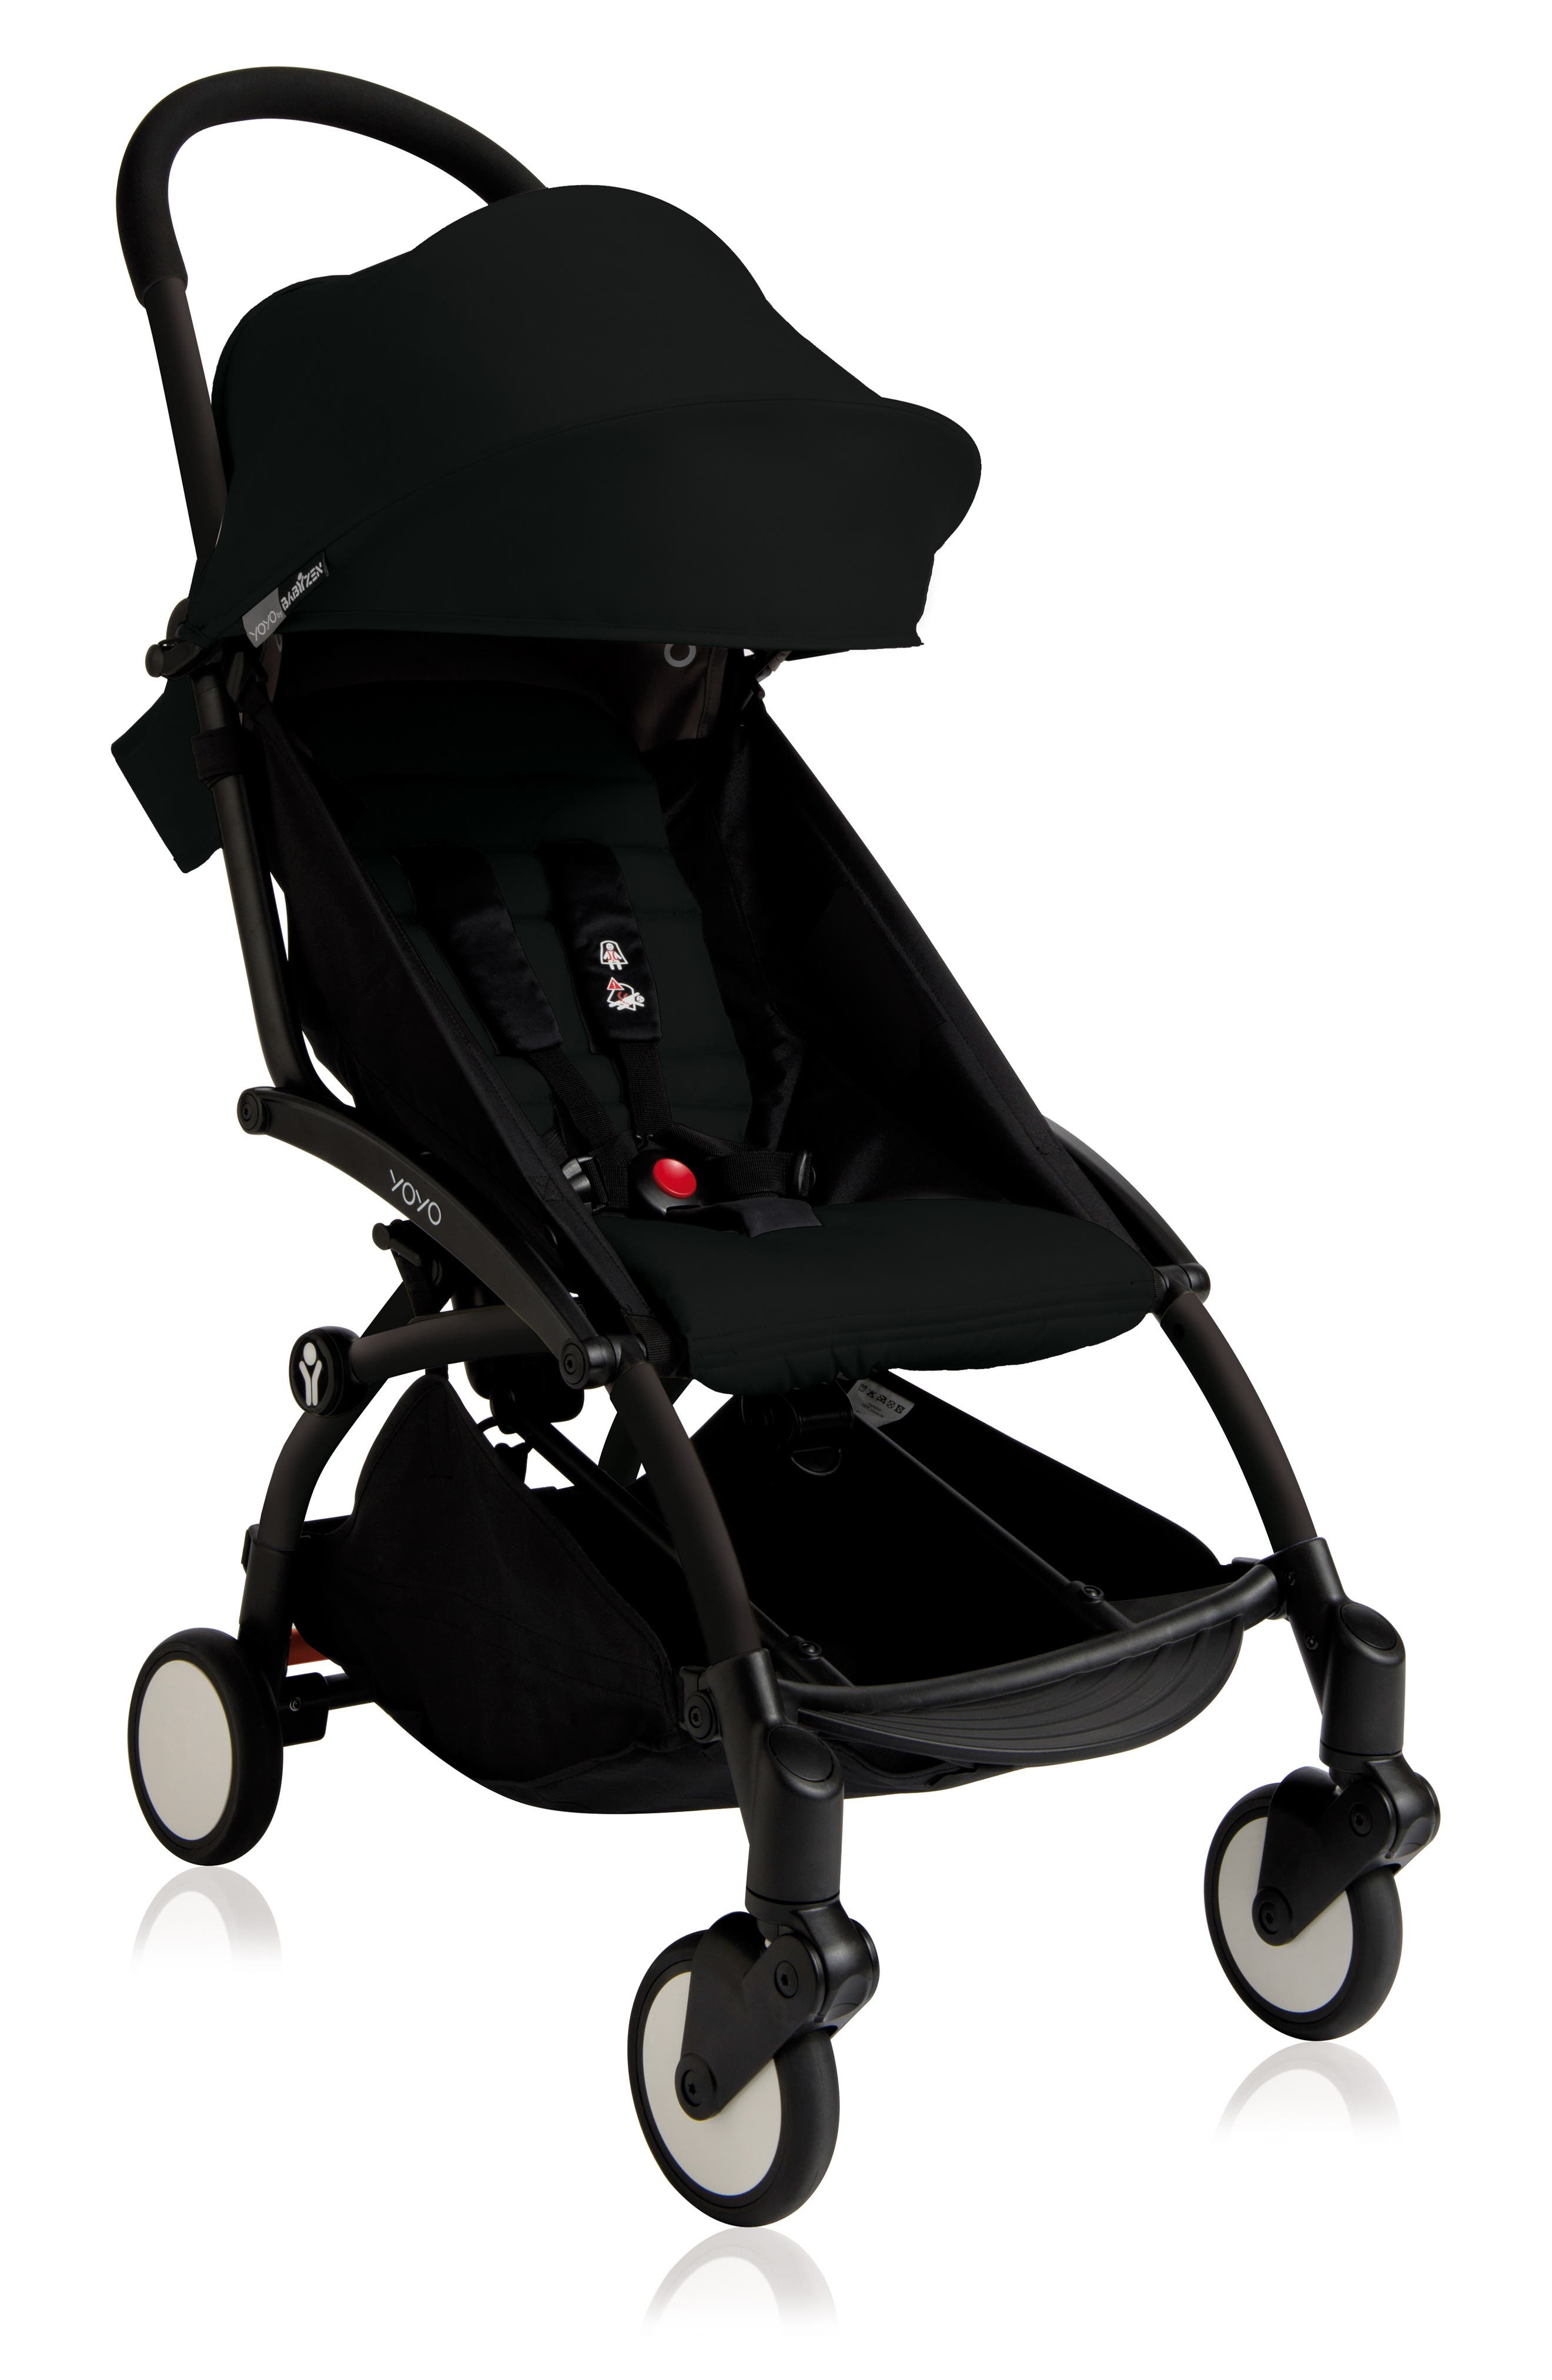 BABYZEN<SUP>™</SUP>, BABYZEN YOYO+ Complete Stroller with Toddler/Little Kid Color Pack Fabric Set, Main thumbnail 1, color, BLACK/ BLACK